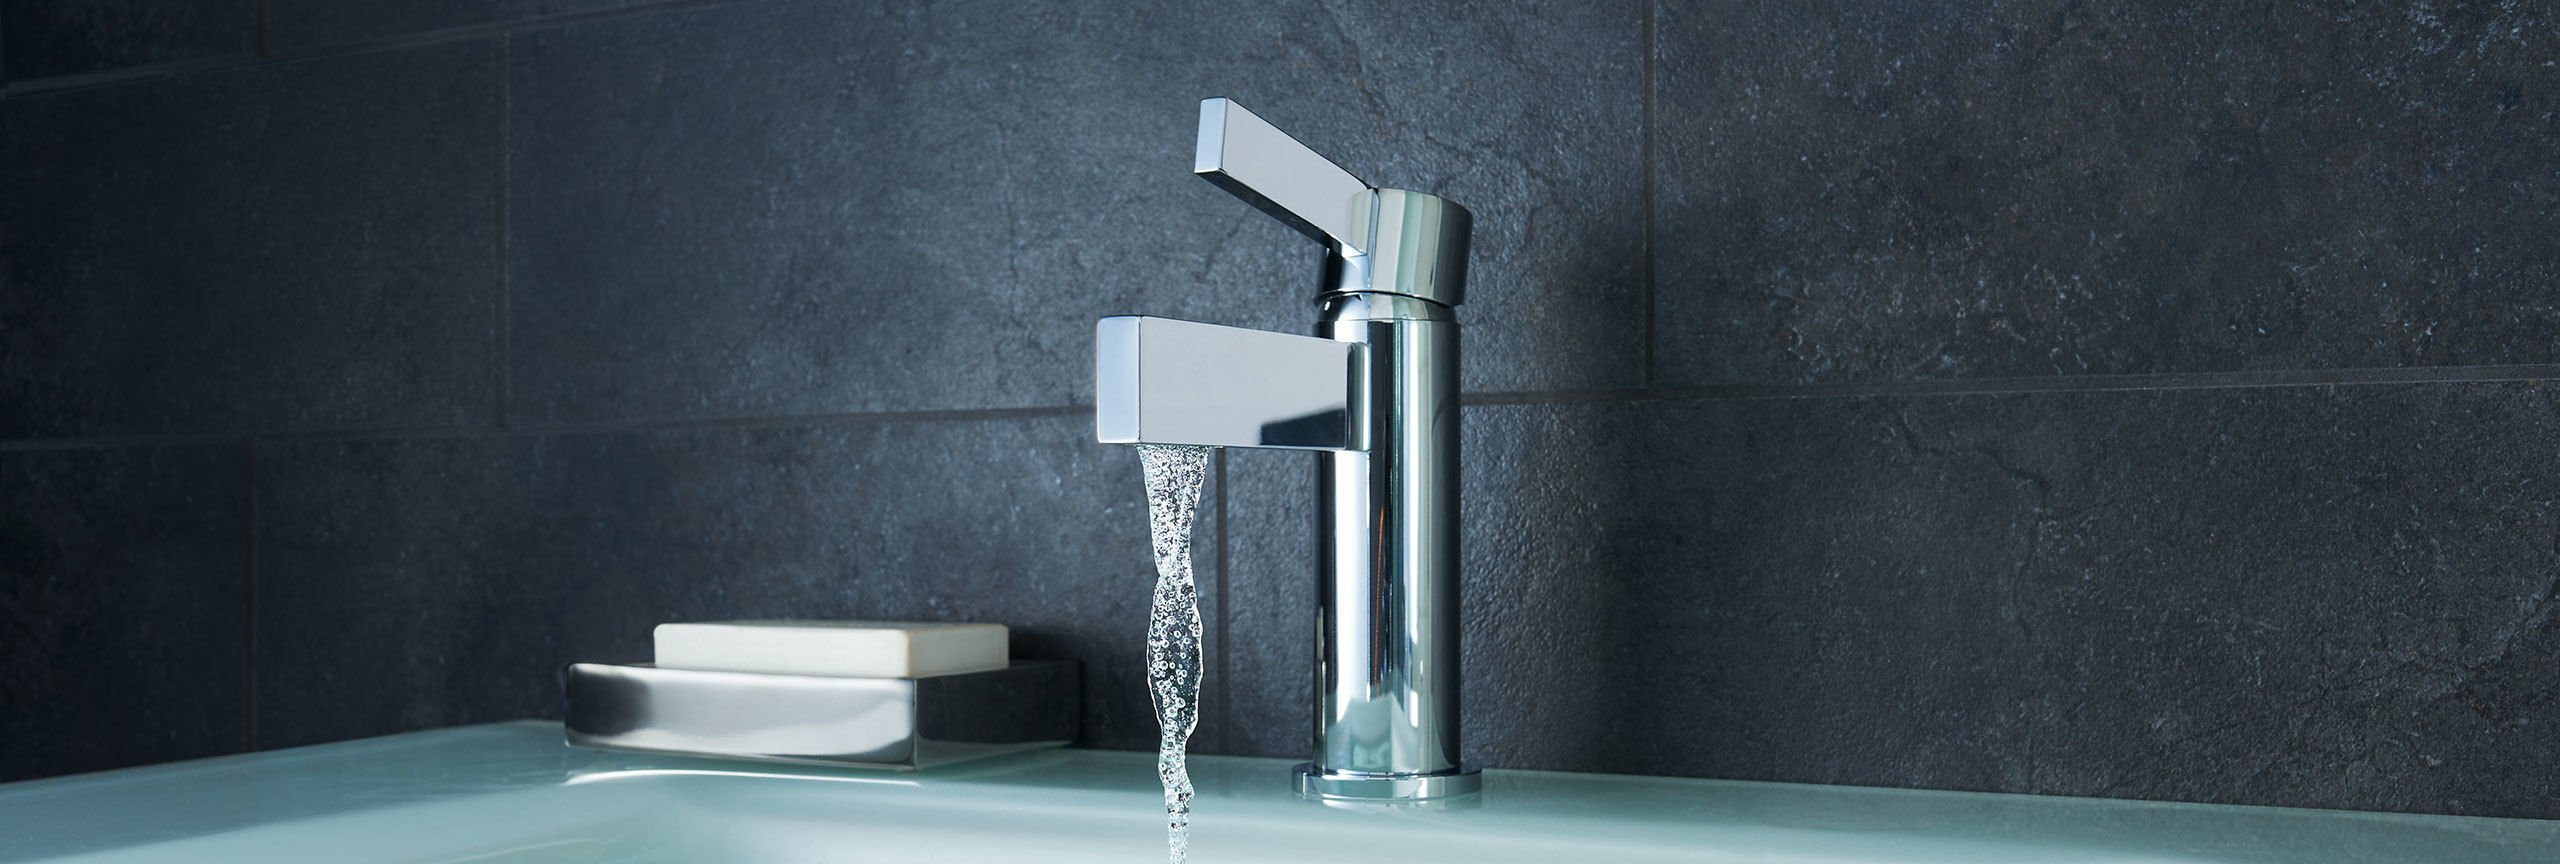 bathroom series Bel Canto single hole faucet with running water